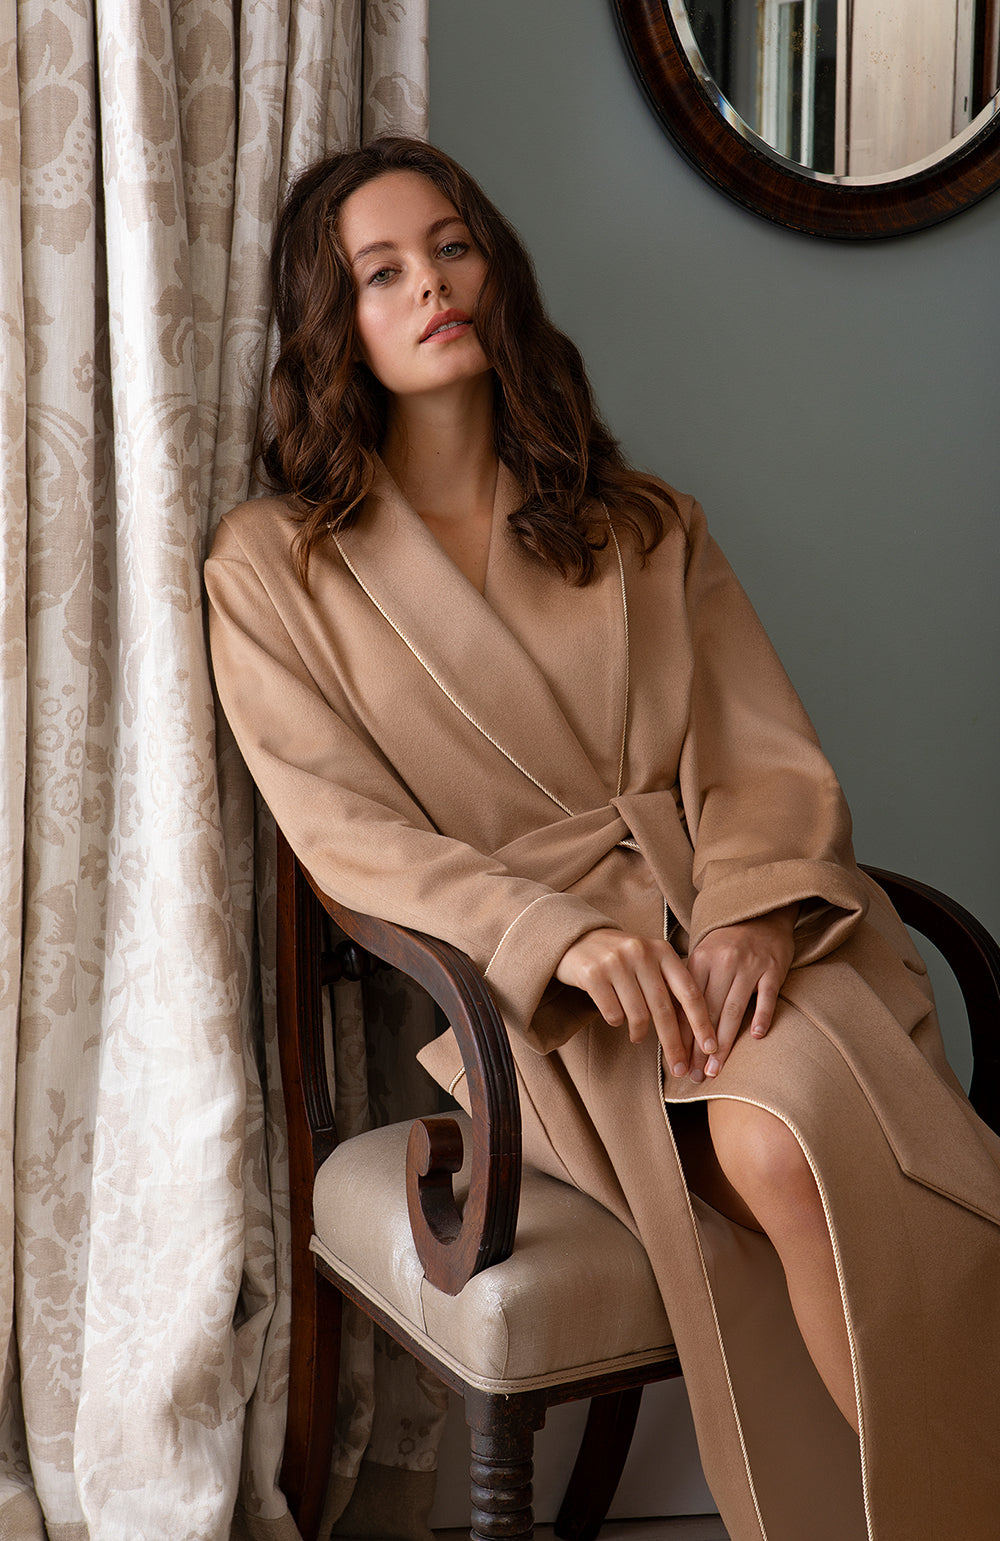 Women's Luxury Camel Silk-Lined Cashmere Robe | Bonsoir of London